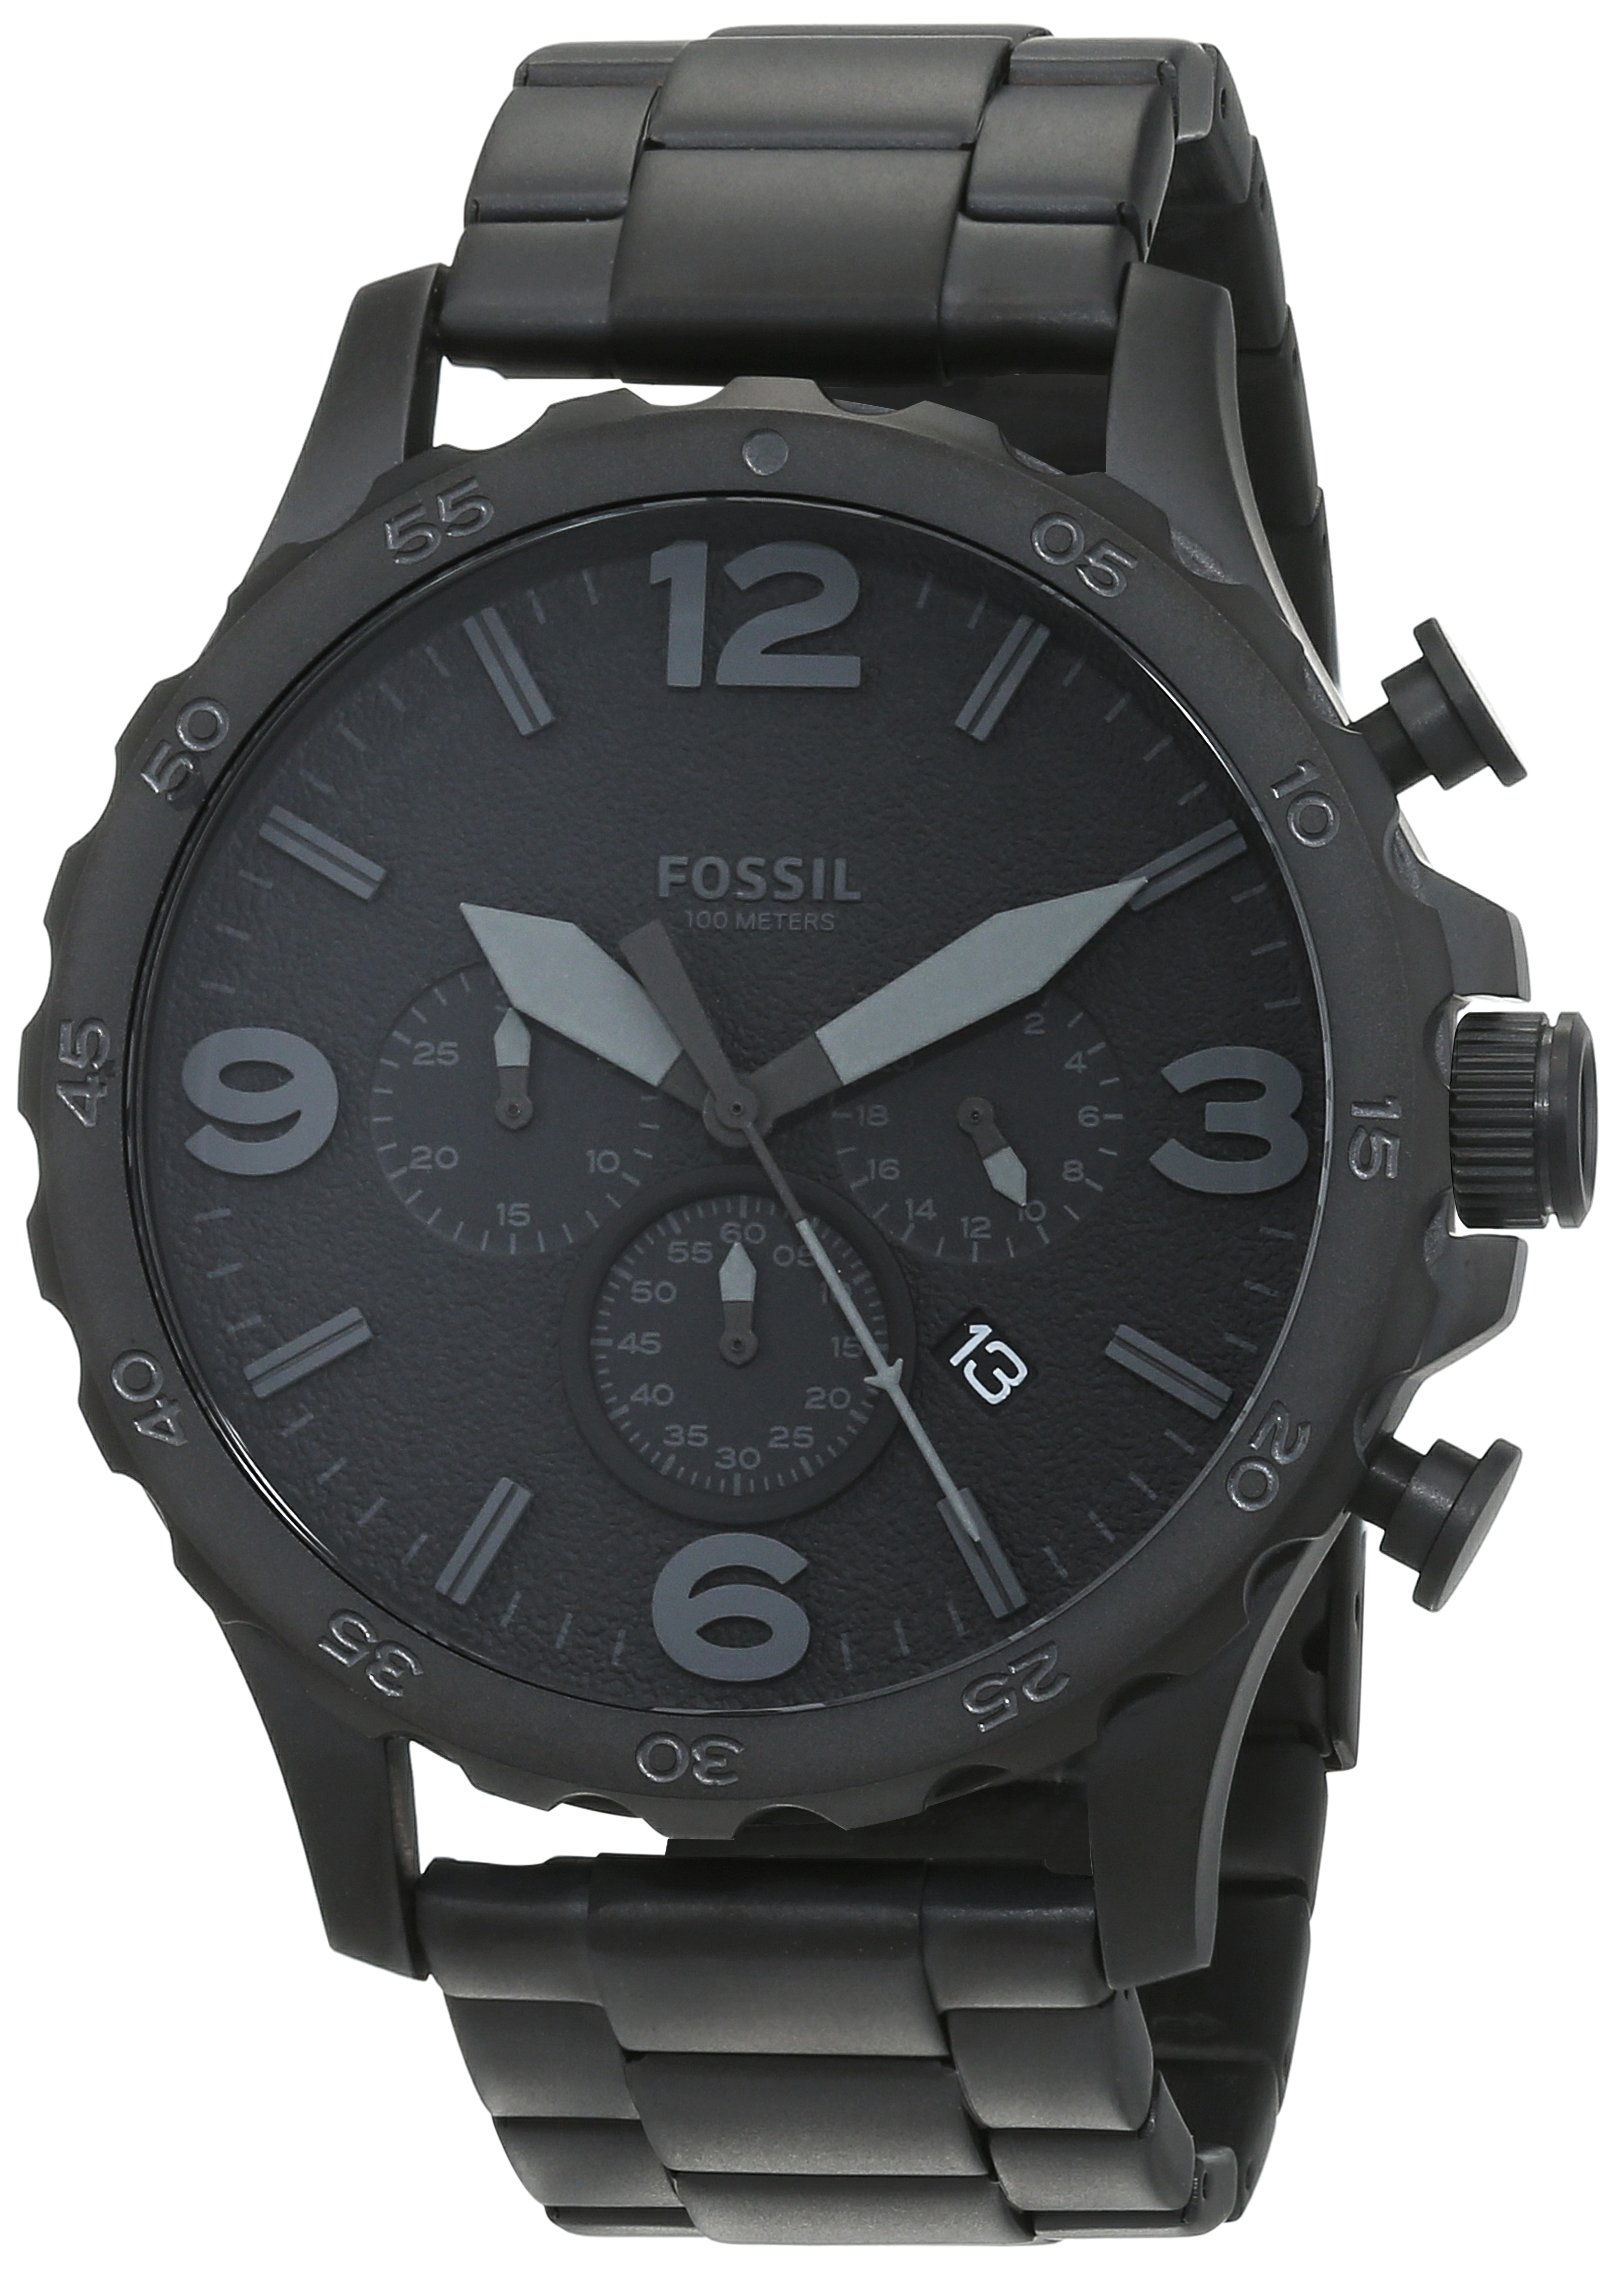 fossil men 39 s fs4487 machine chronograph black stainless steel watch with silicone. Black Bedroom Furniture Sets. Home Design Ideas